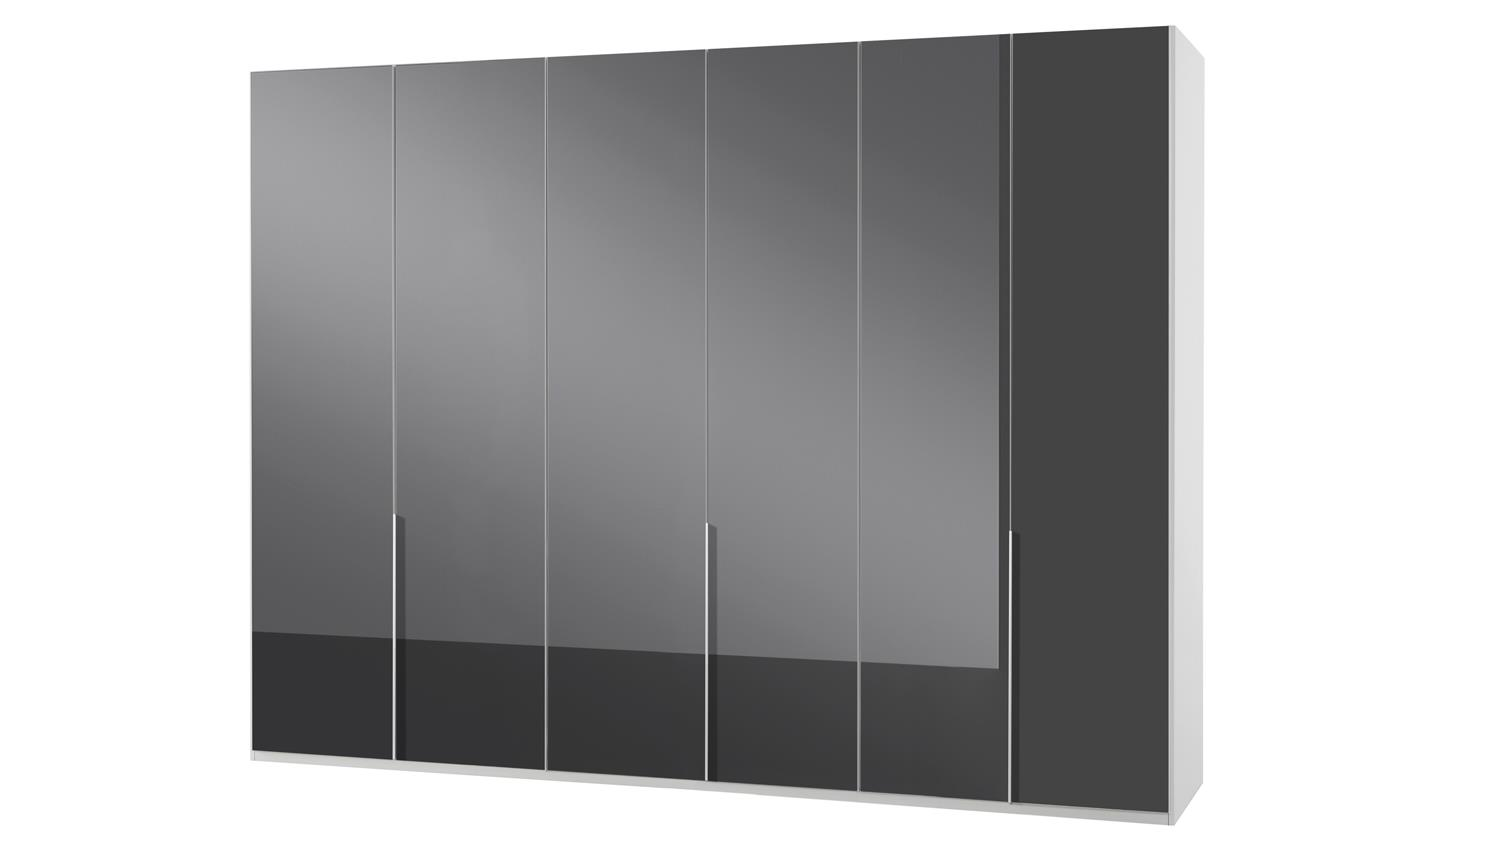 kleiderschrank new york c in glas grau alpinwei 270 cm. Black Bedroom Furniture Sets. Home Design Ideas